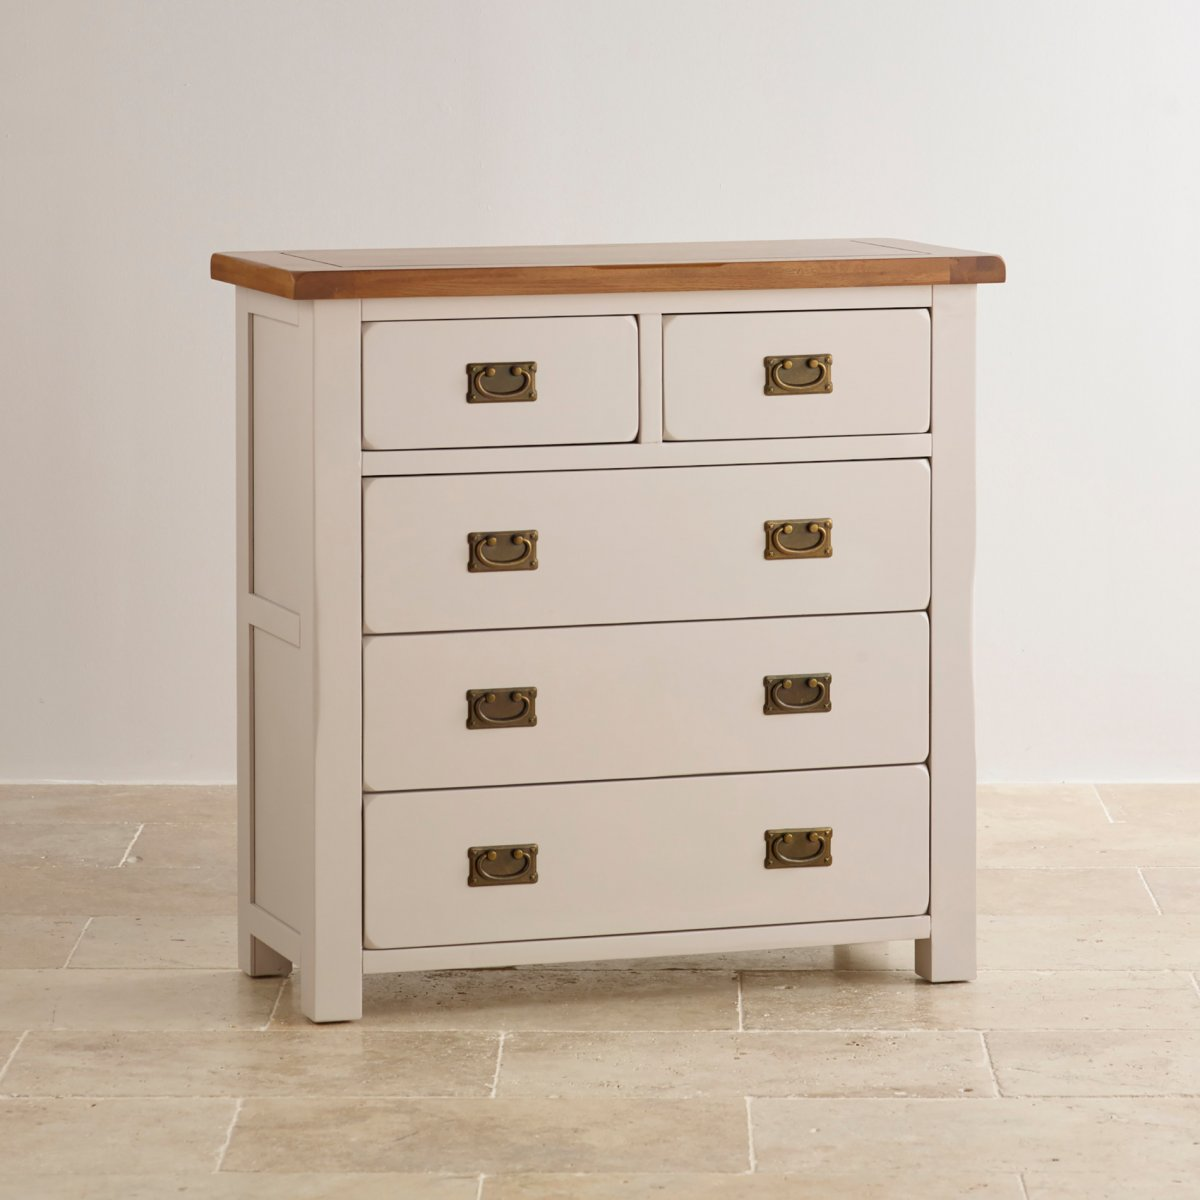 Kemble Rustic Solid Oak Painted 3 2 Chest Of Drawers